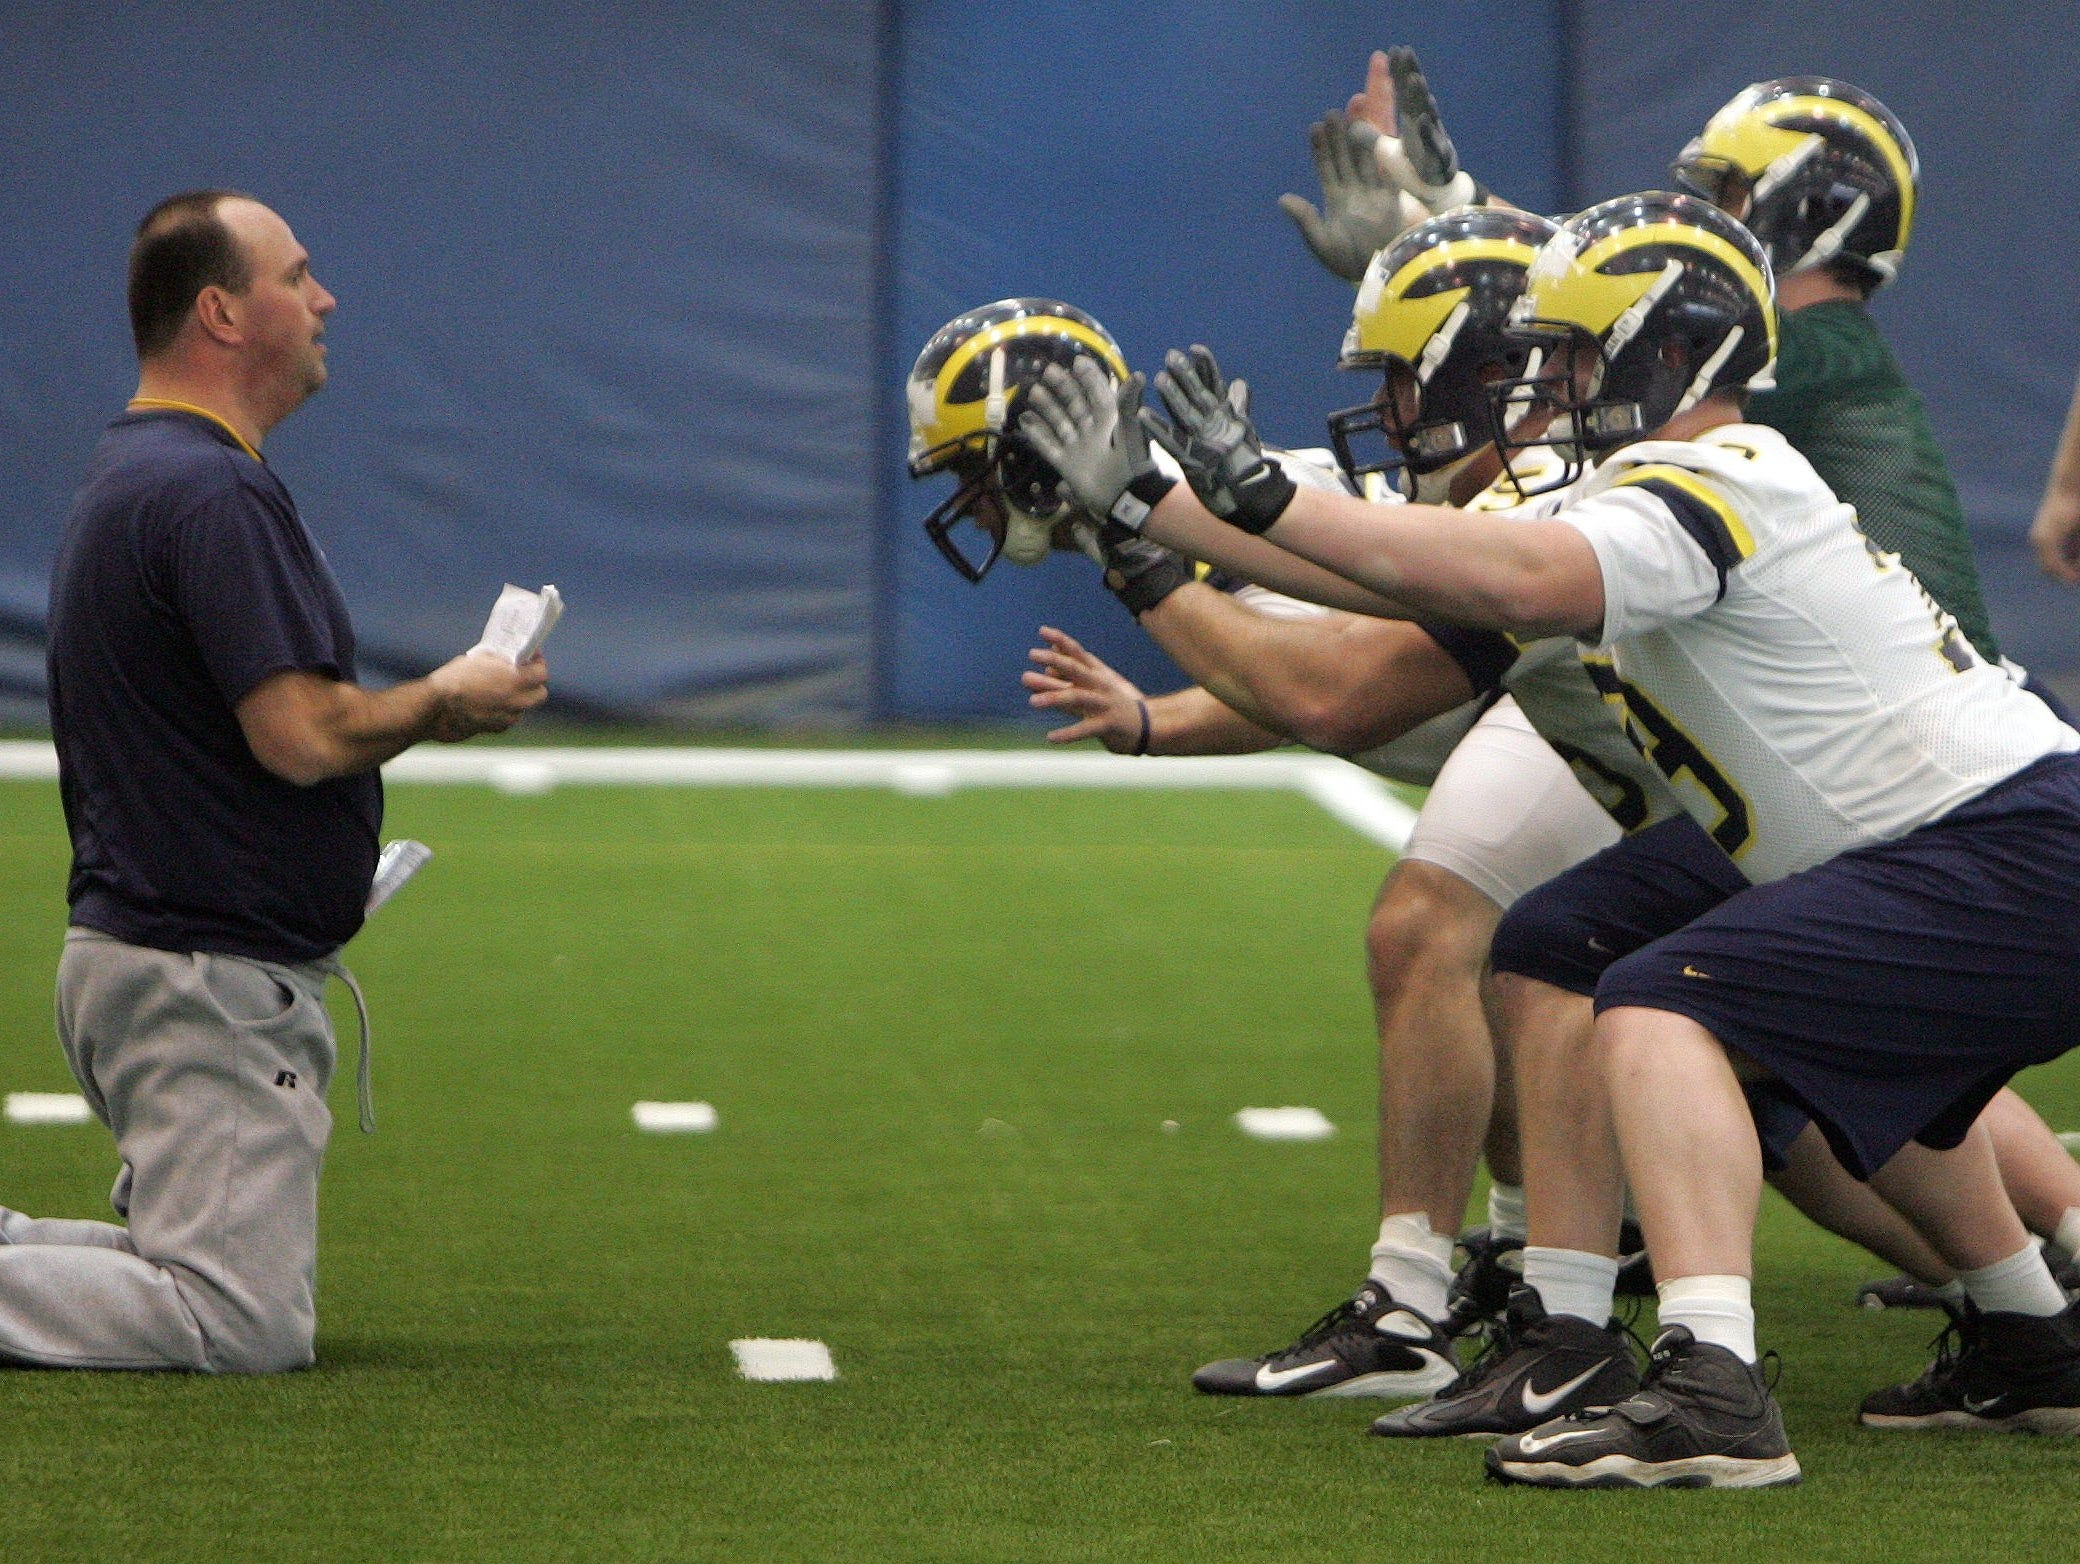 Michigan offensive line Greg Frey watches his team in formation for a field goal kick during spring football practice at the Oosterbaan Field House on March 15, 2008.